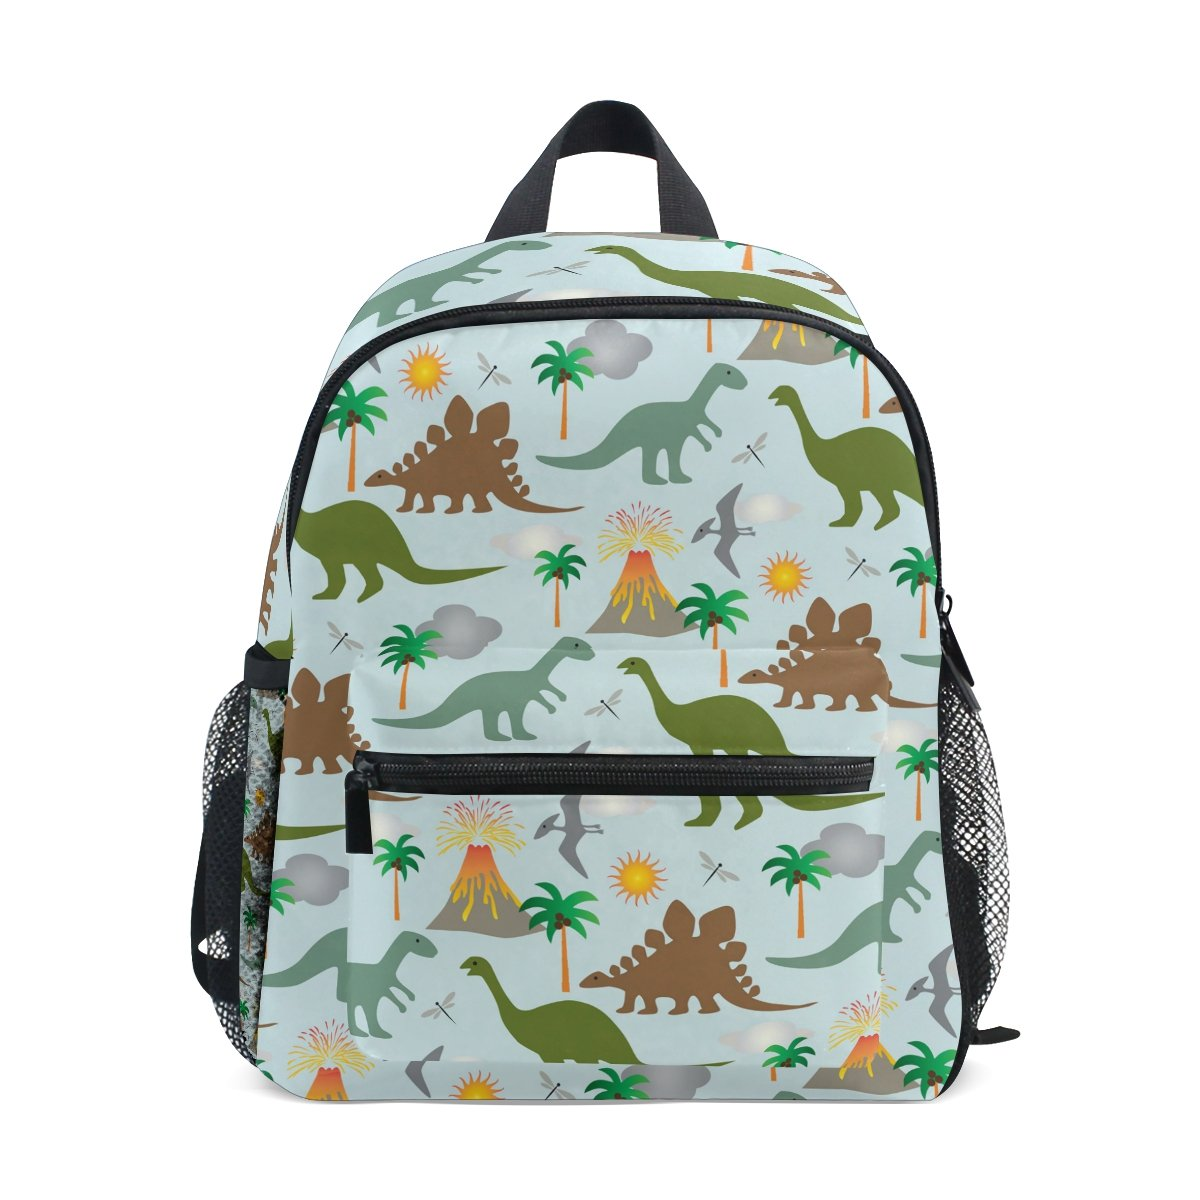 GIOVANIOR Dinosaurs And Volcanoes Travel School Backpack for Boys Girls Kids